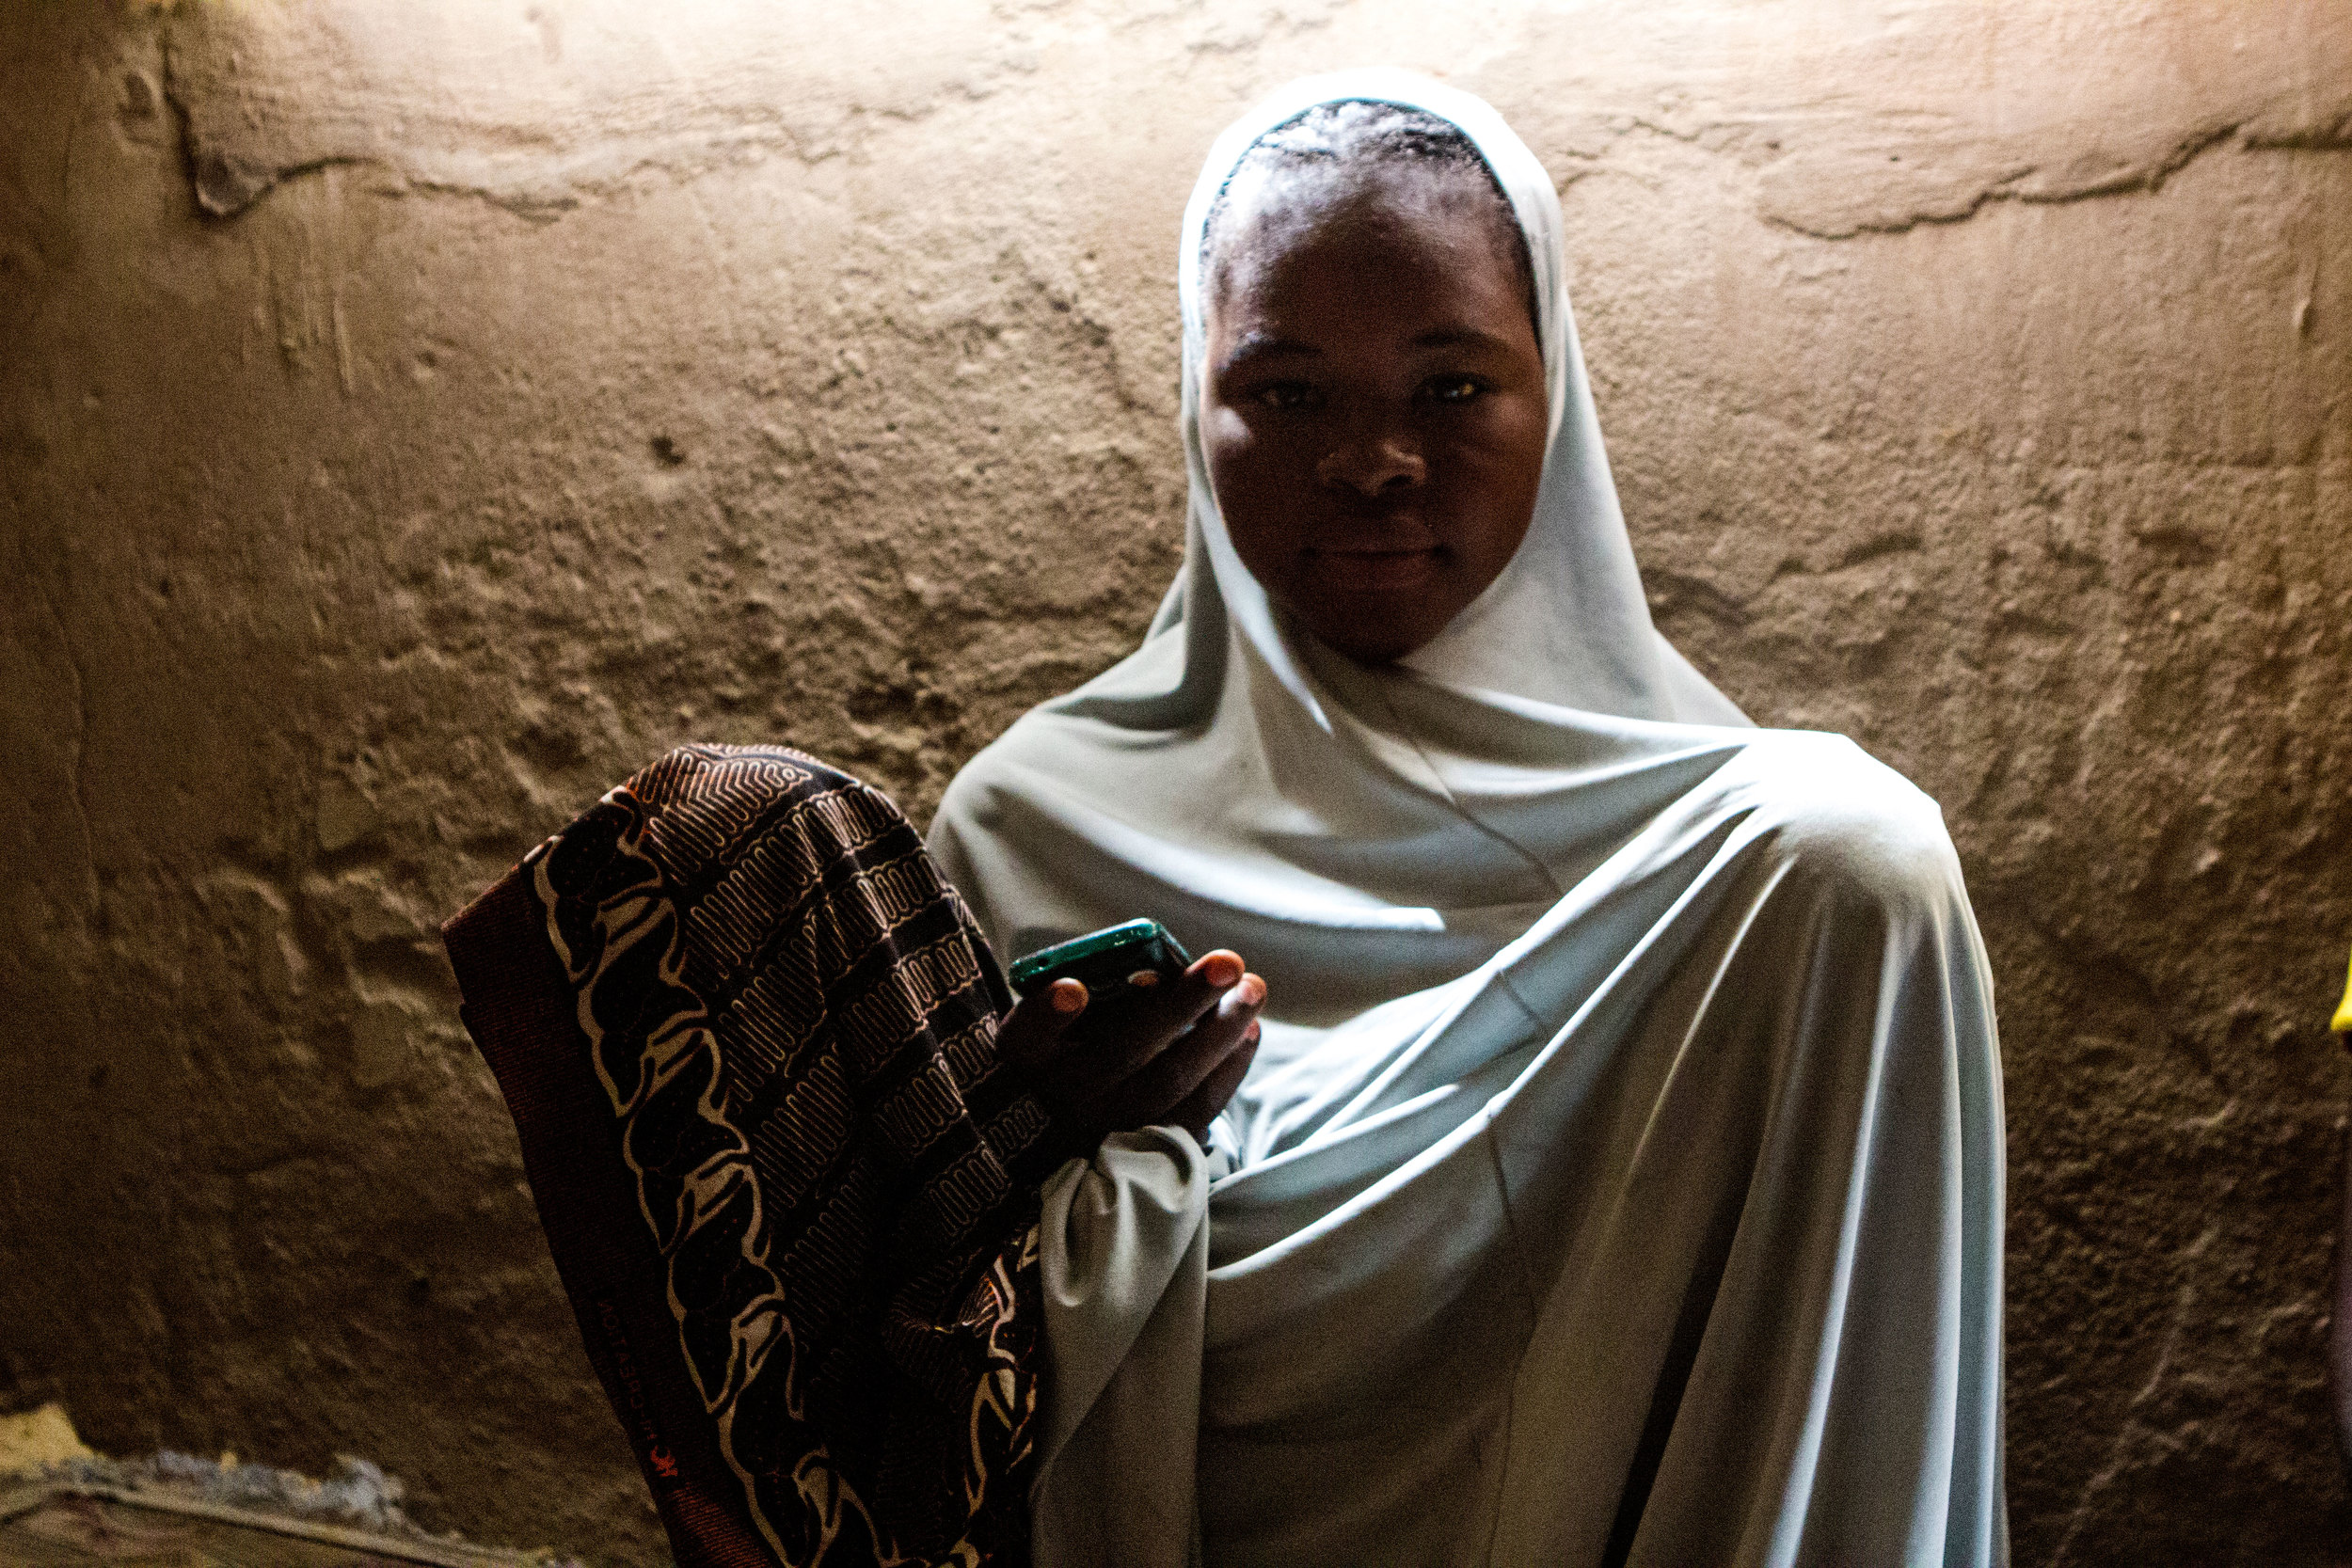 Yola, Nigeria. March 6 2015. Aisha, 17, poses for a photo after sending SMS messages on her cell phone. She sits in the one-room house her family now rents after fleeing Boko Haram violence in her hometown.